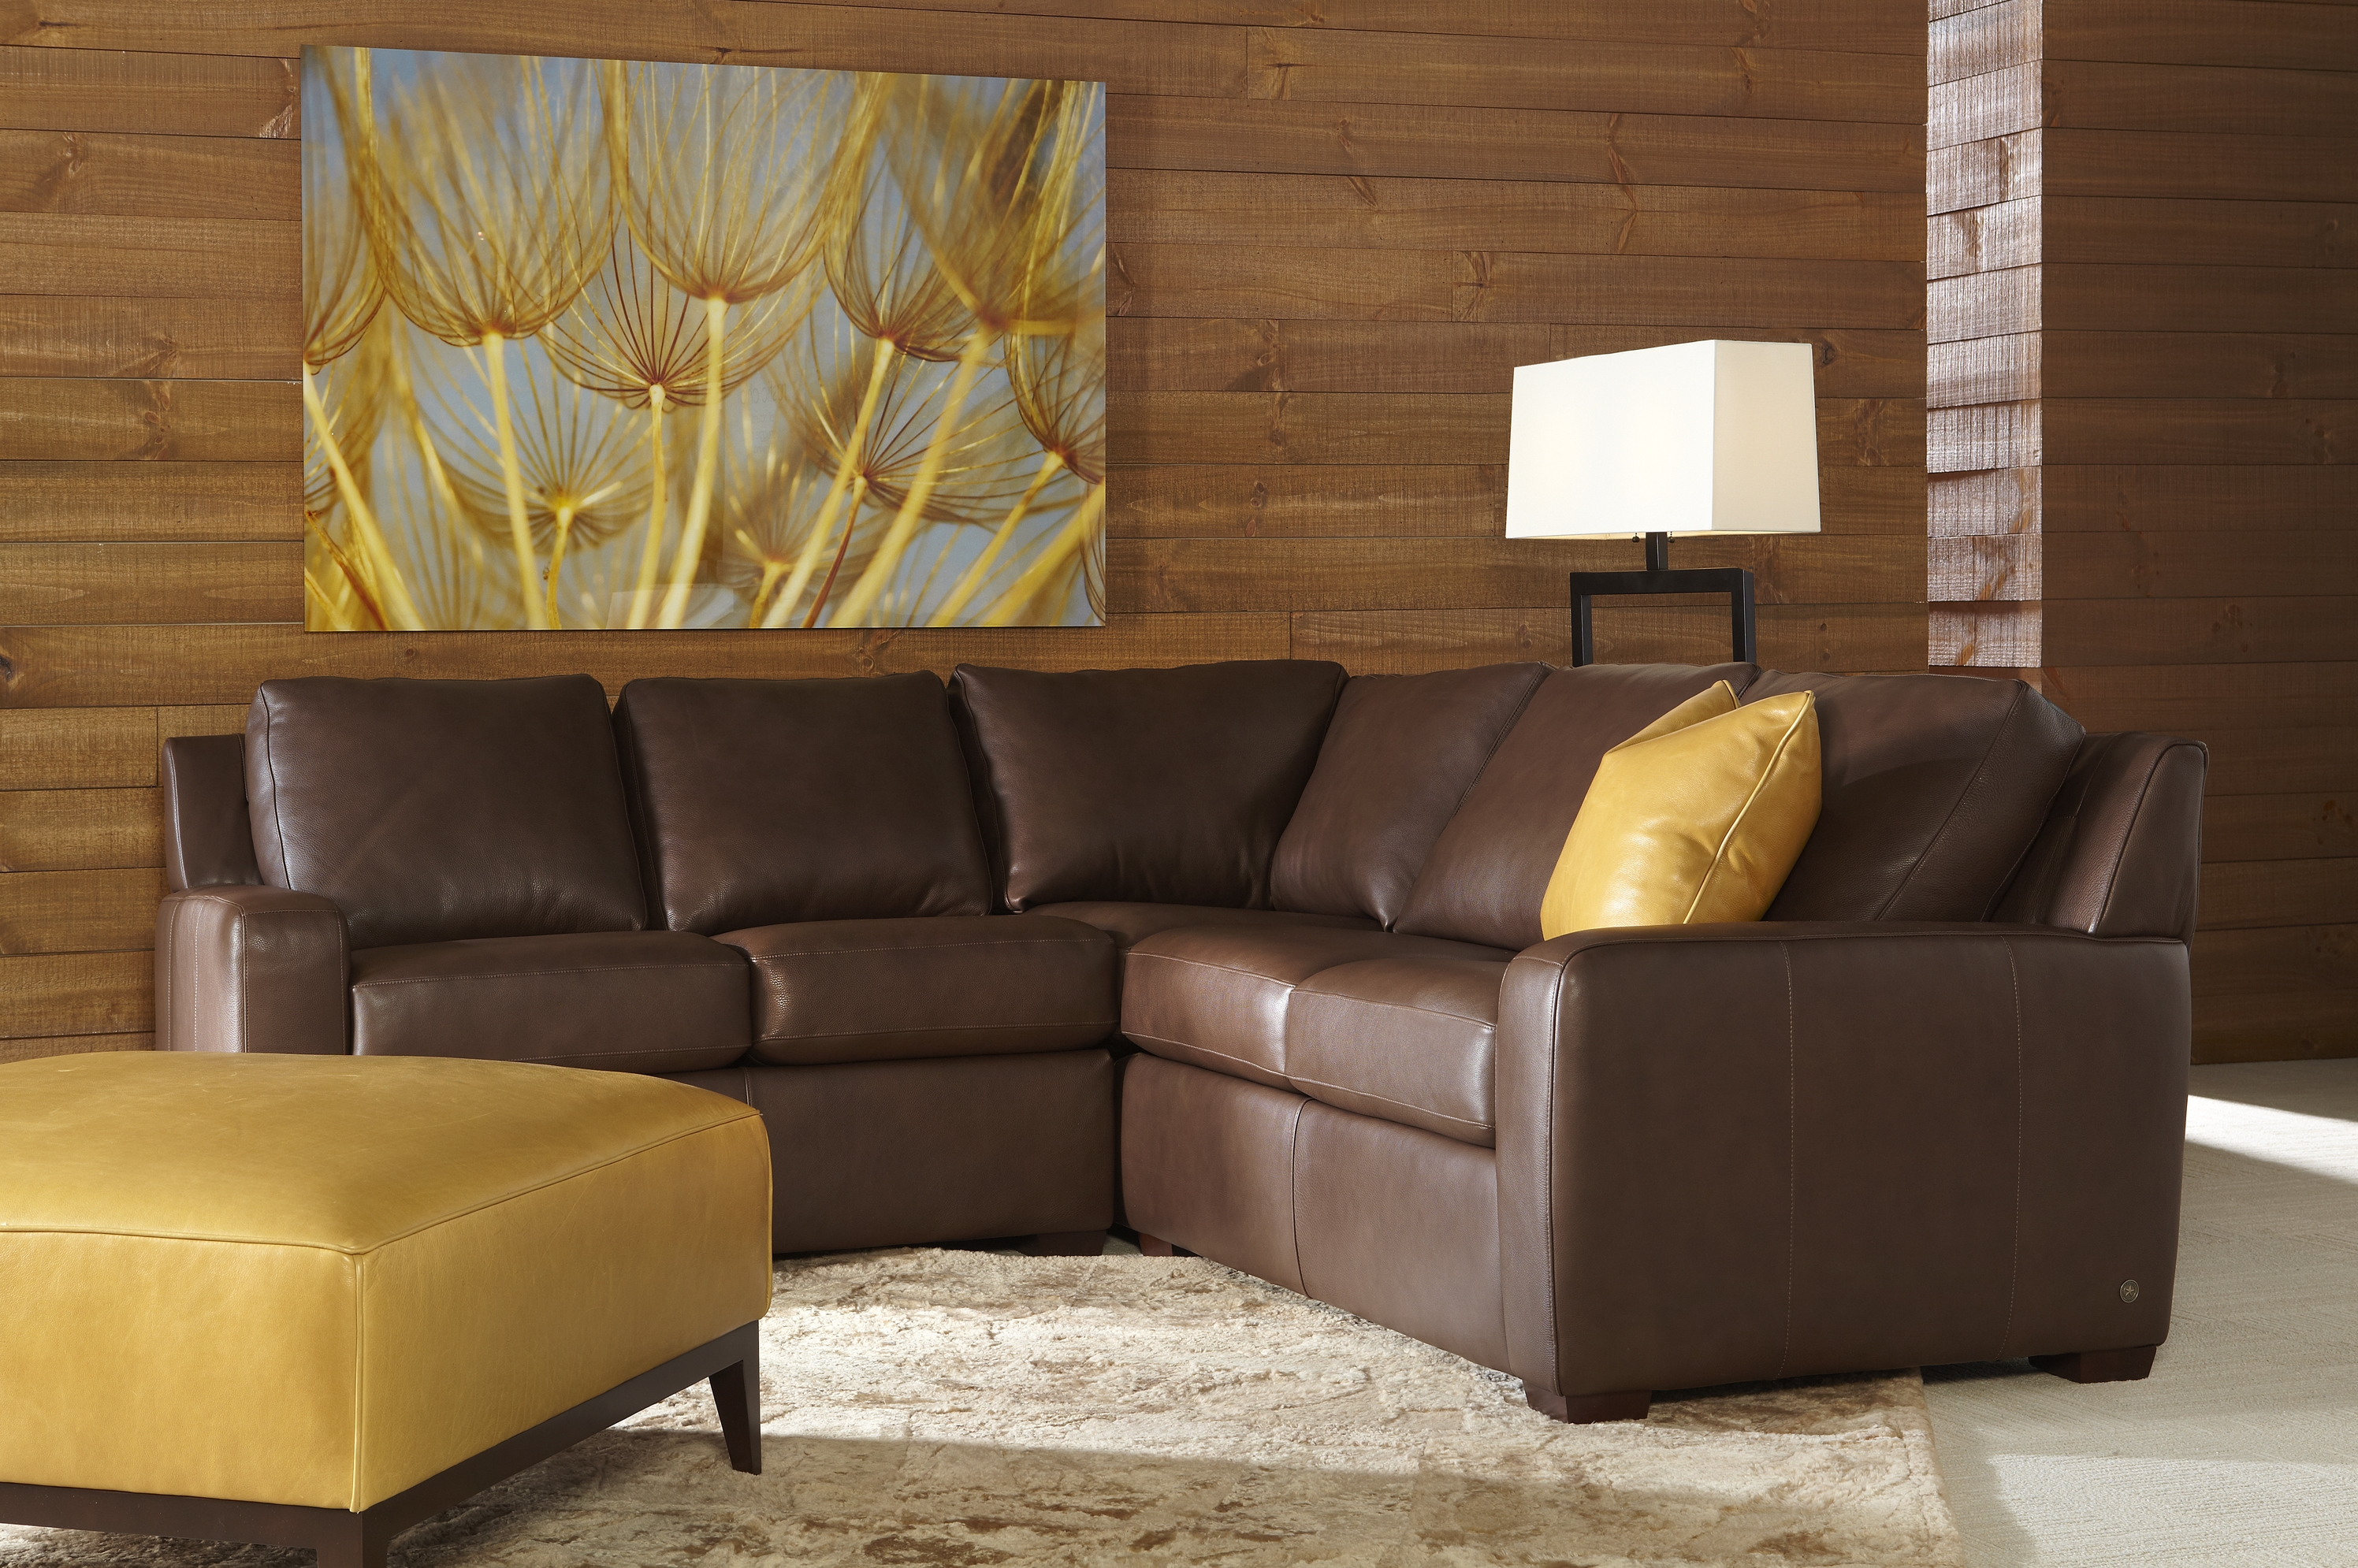 Sectional Sofas Elegance And Style Tailored Just For Youand Throughout American Made Sectional Sofas (#11 of 12)